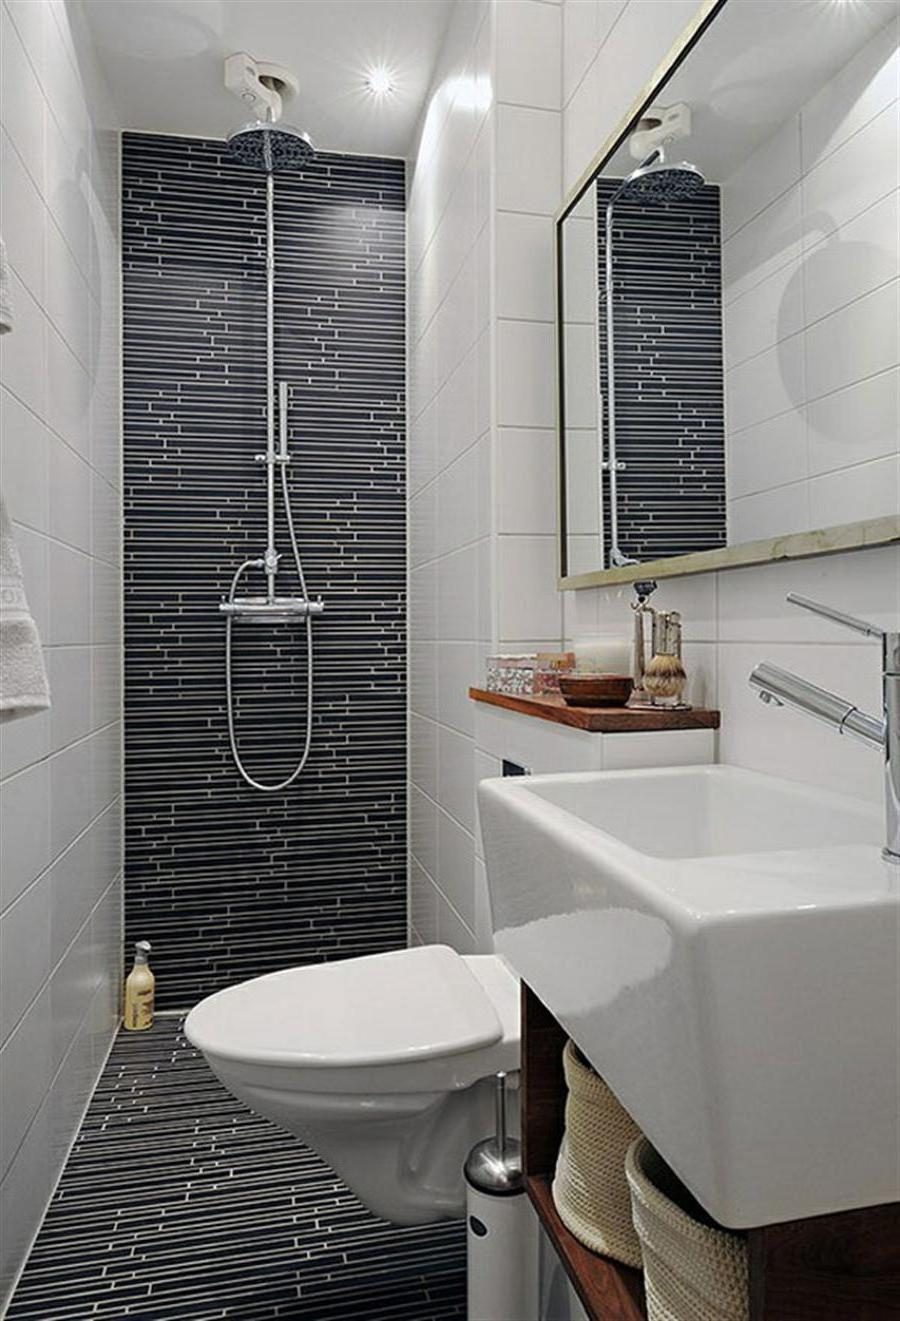 Thin shower tiles